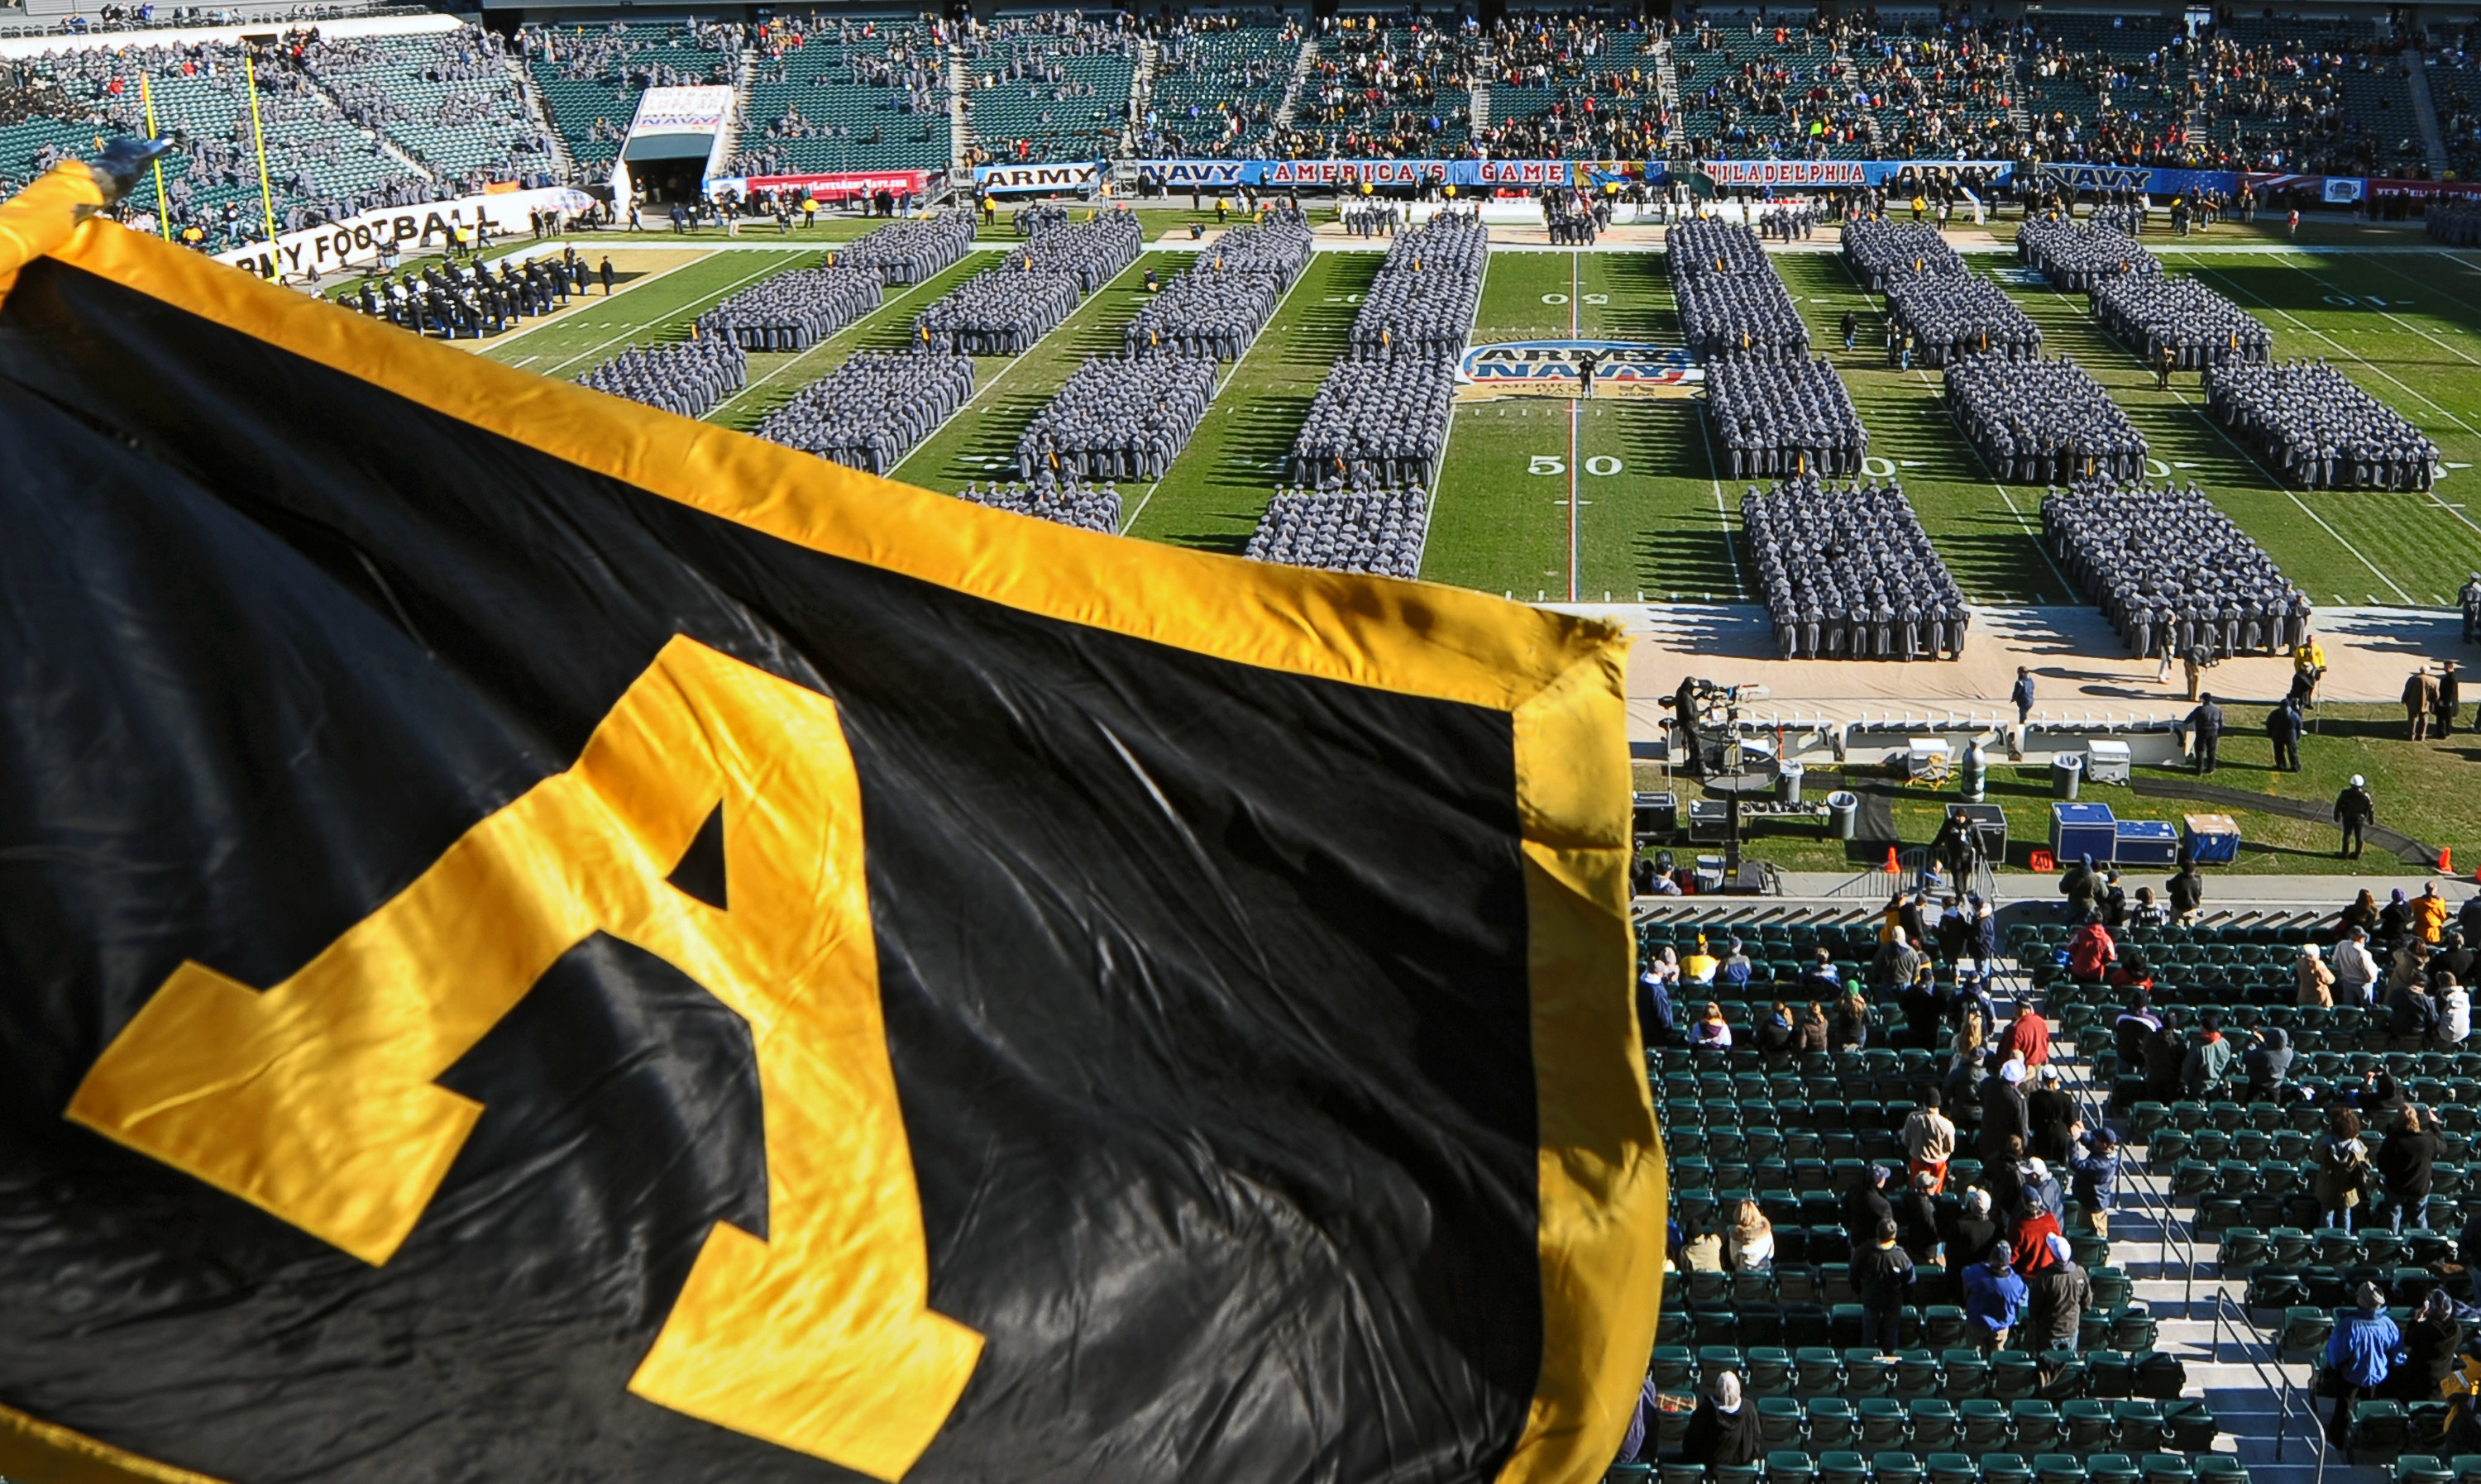 PHILADELPHIA - DECEMBER 12: Army Cadets march onto the field before the game between the Army Black Nights and Navy Midshipmen on December 12, 2009 at Lincoln Financial Field in Philadelphia, Pennsylvania. (Photo by Drew Hallowell/Getty Images)